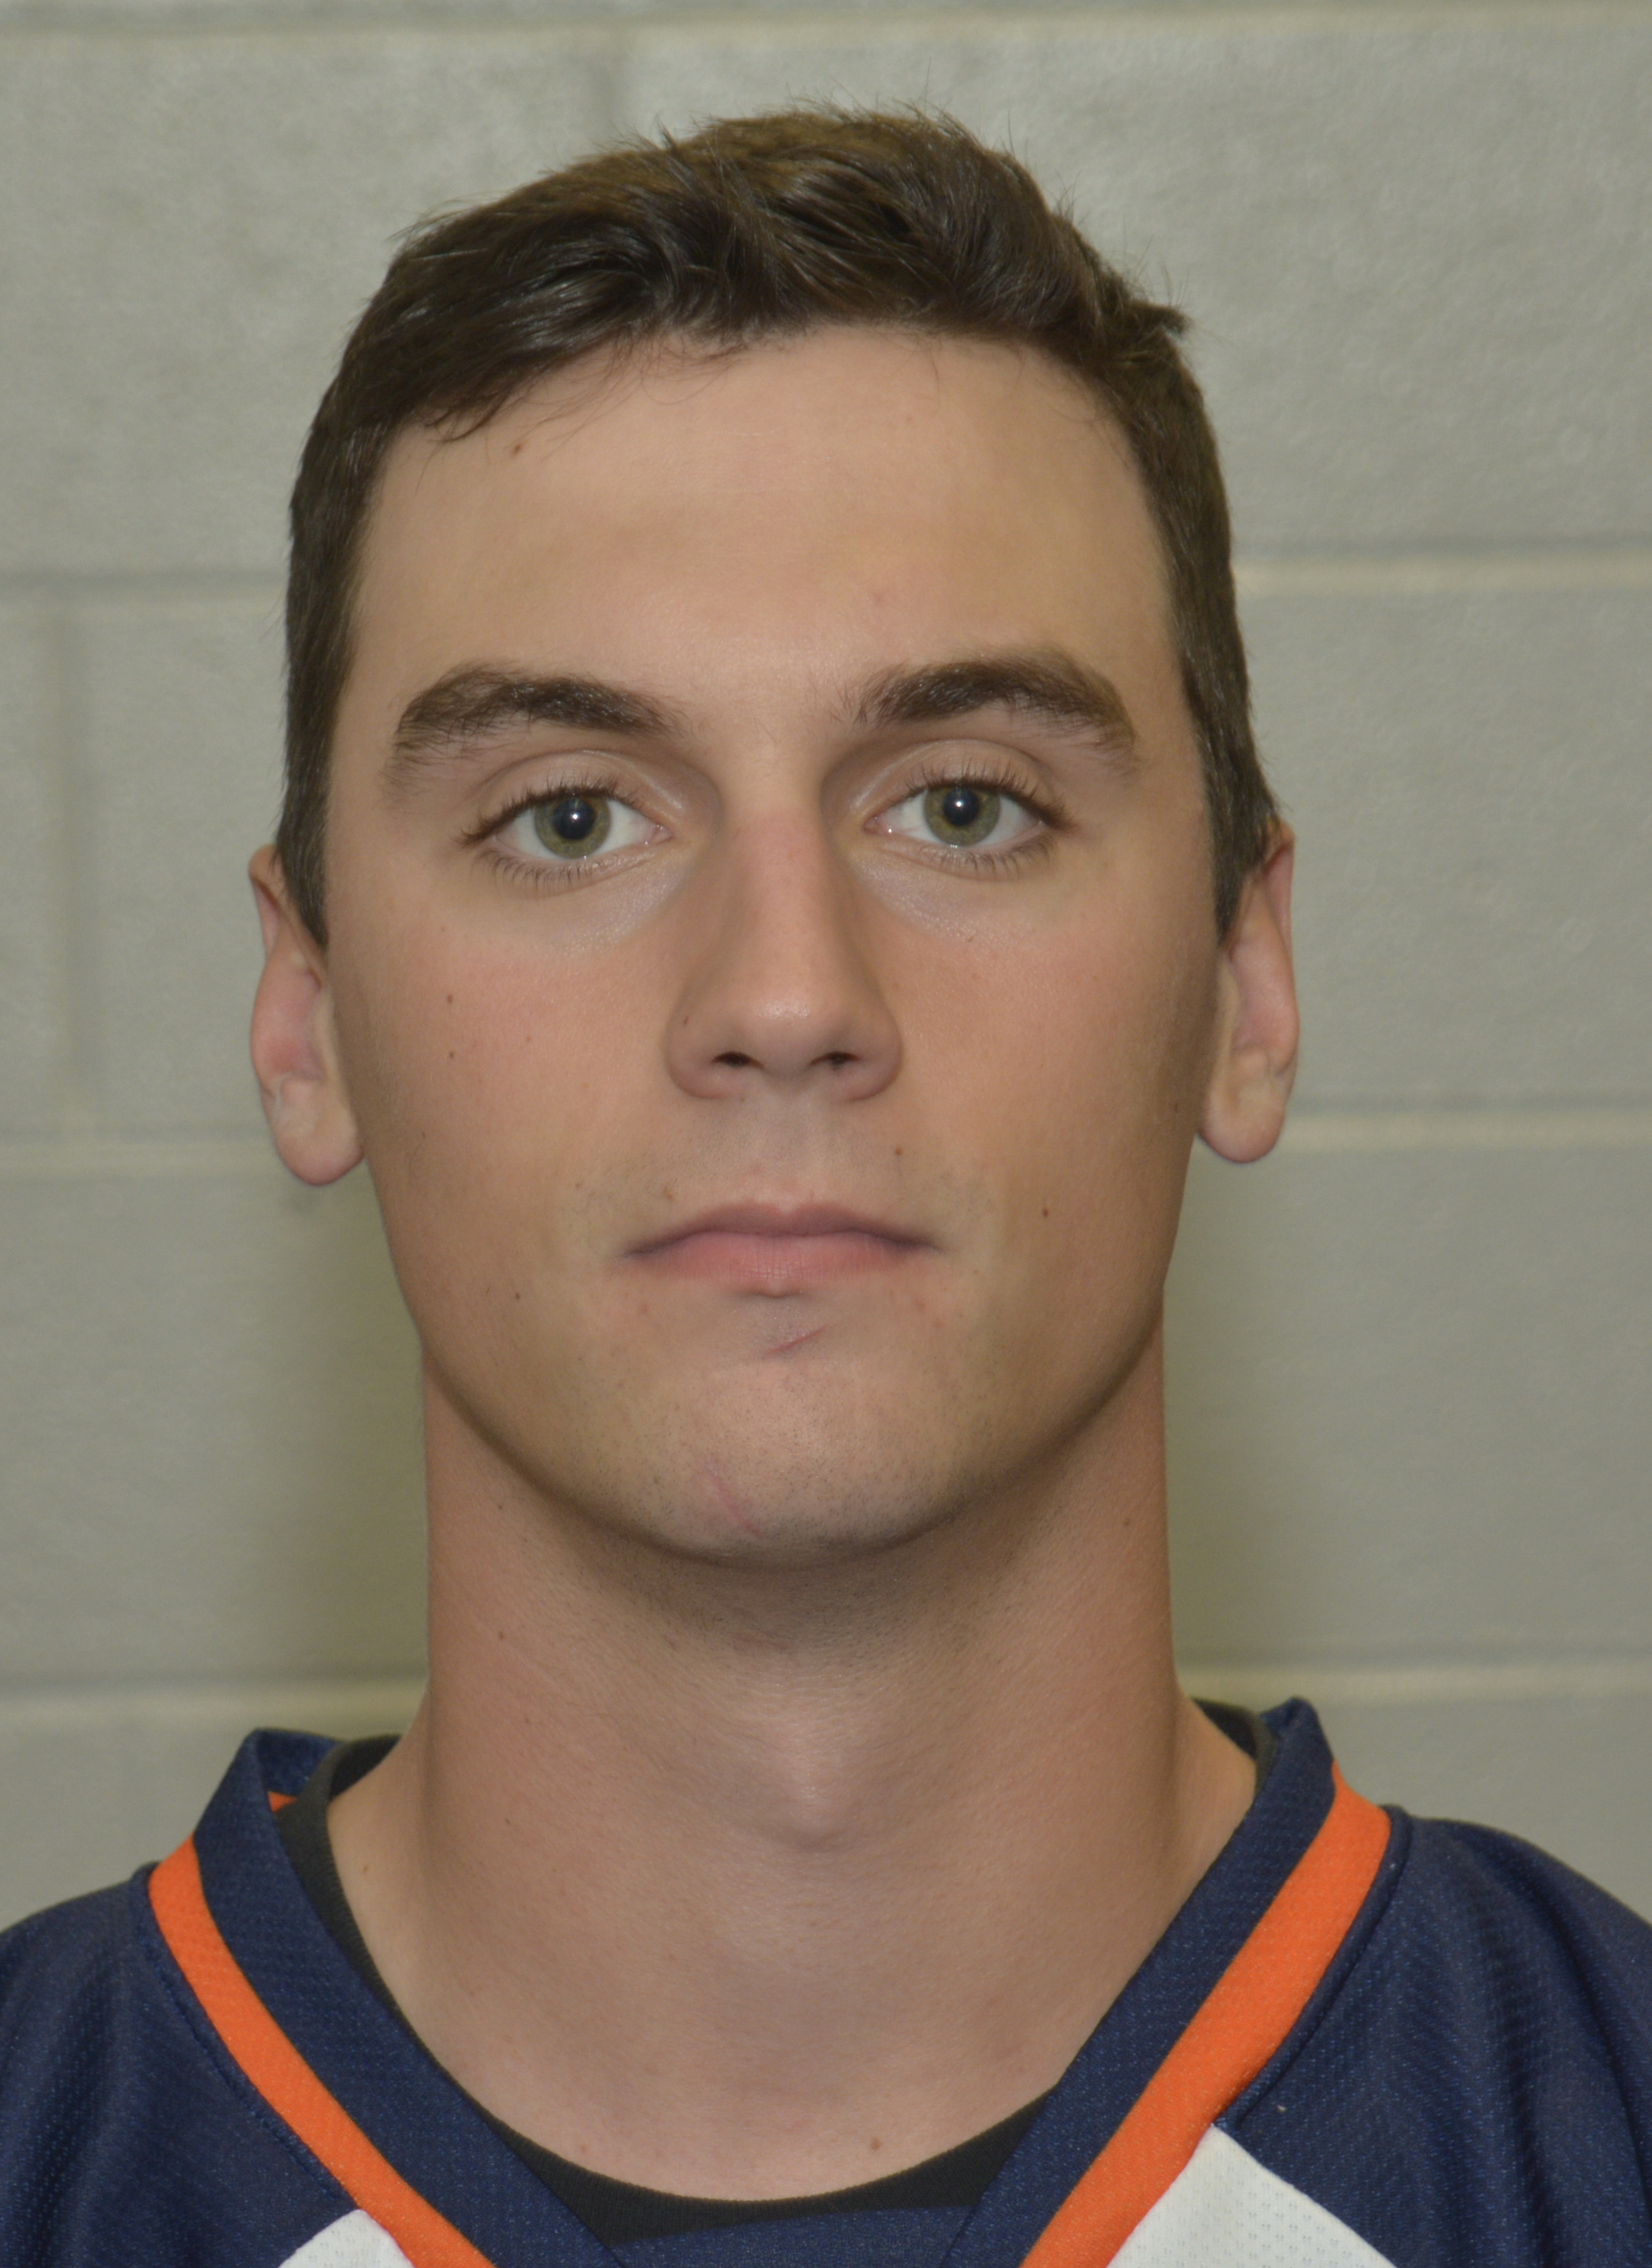 Sportscraft Defenceman of the Month for November